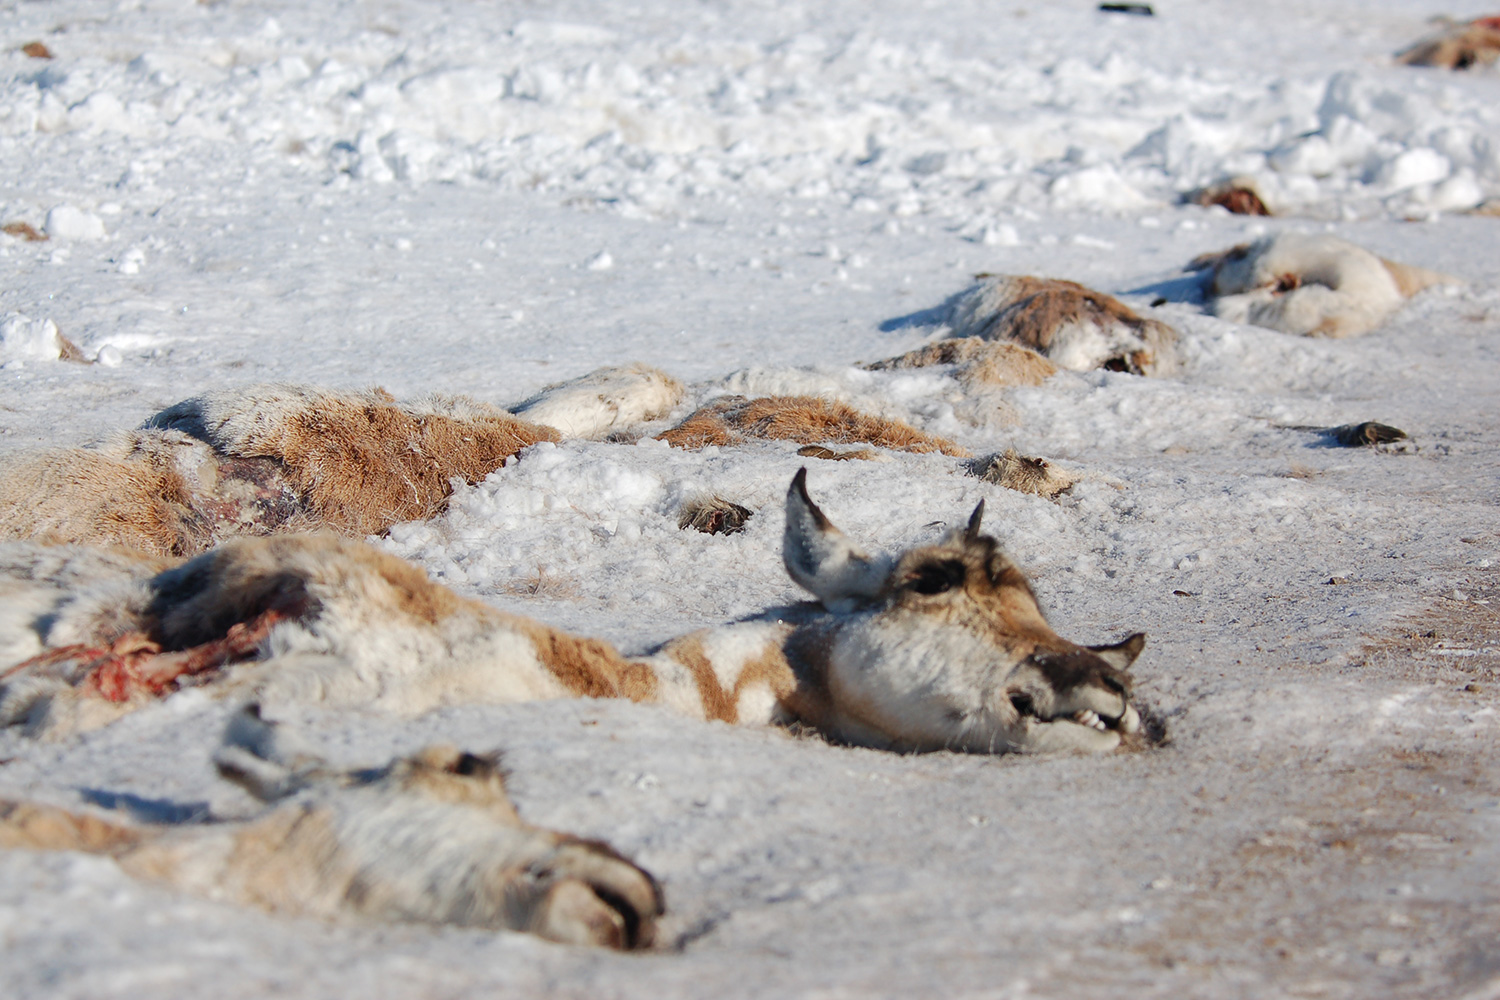 The Latest Teton Pronghorn Migration Helped By Overpasses